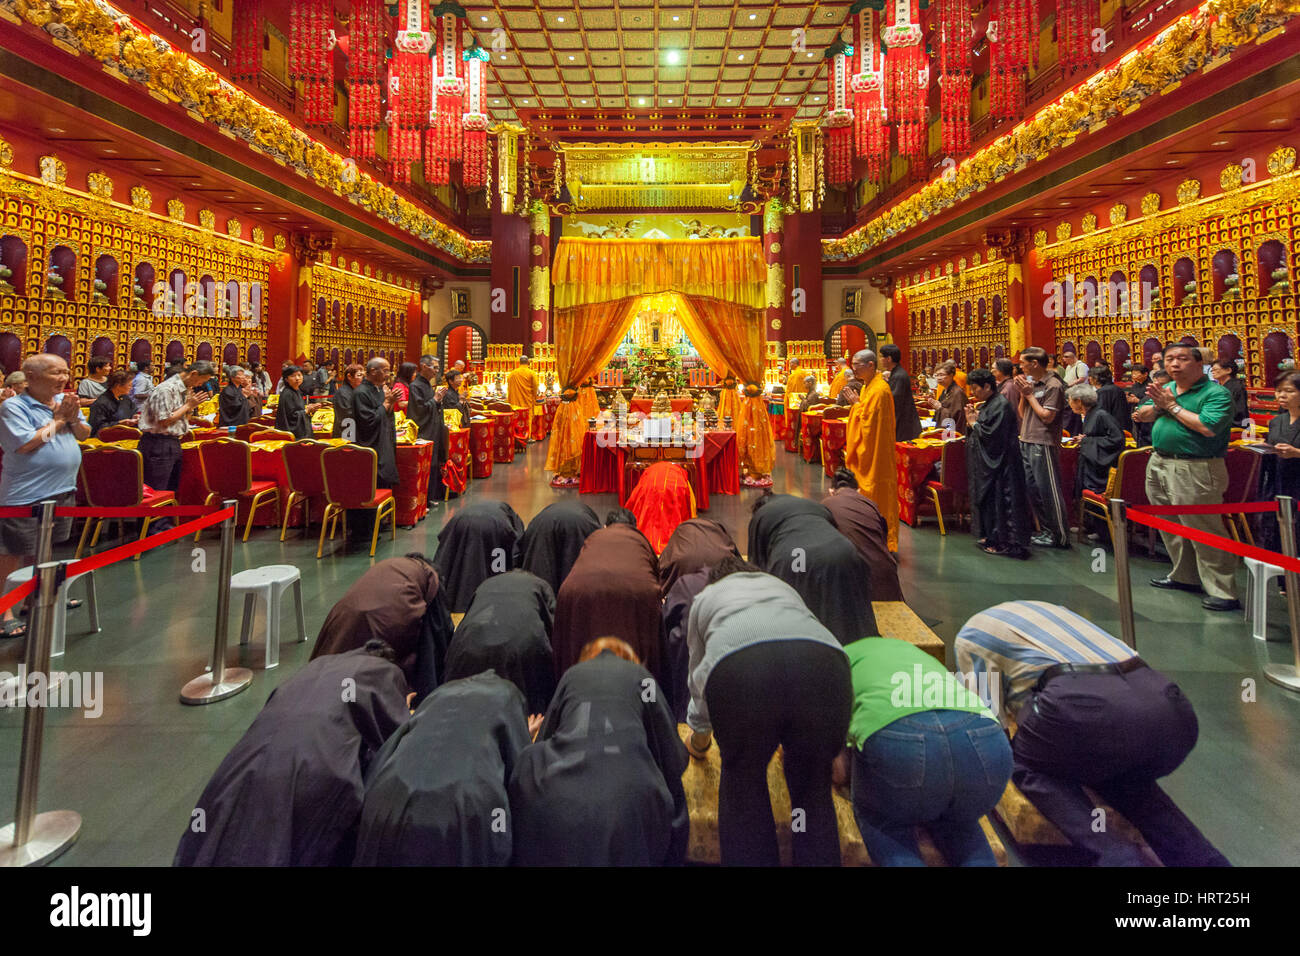 Buddha Tooth Relic Temple, Praying Believer, Religion, Buddhism, Buddha Tooth Temple, Singapore, Asia, Singapore - Stock Image